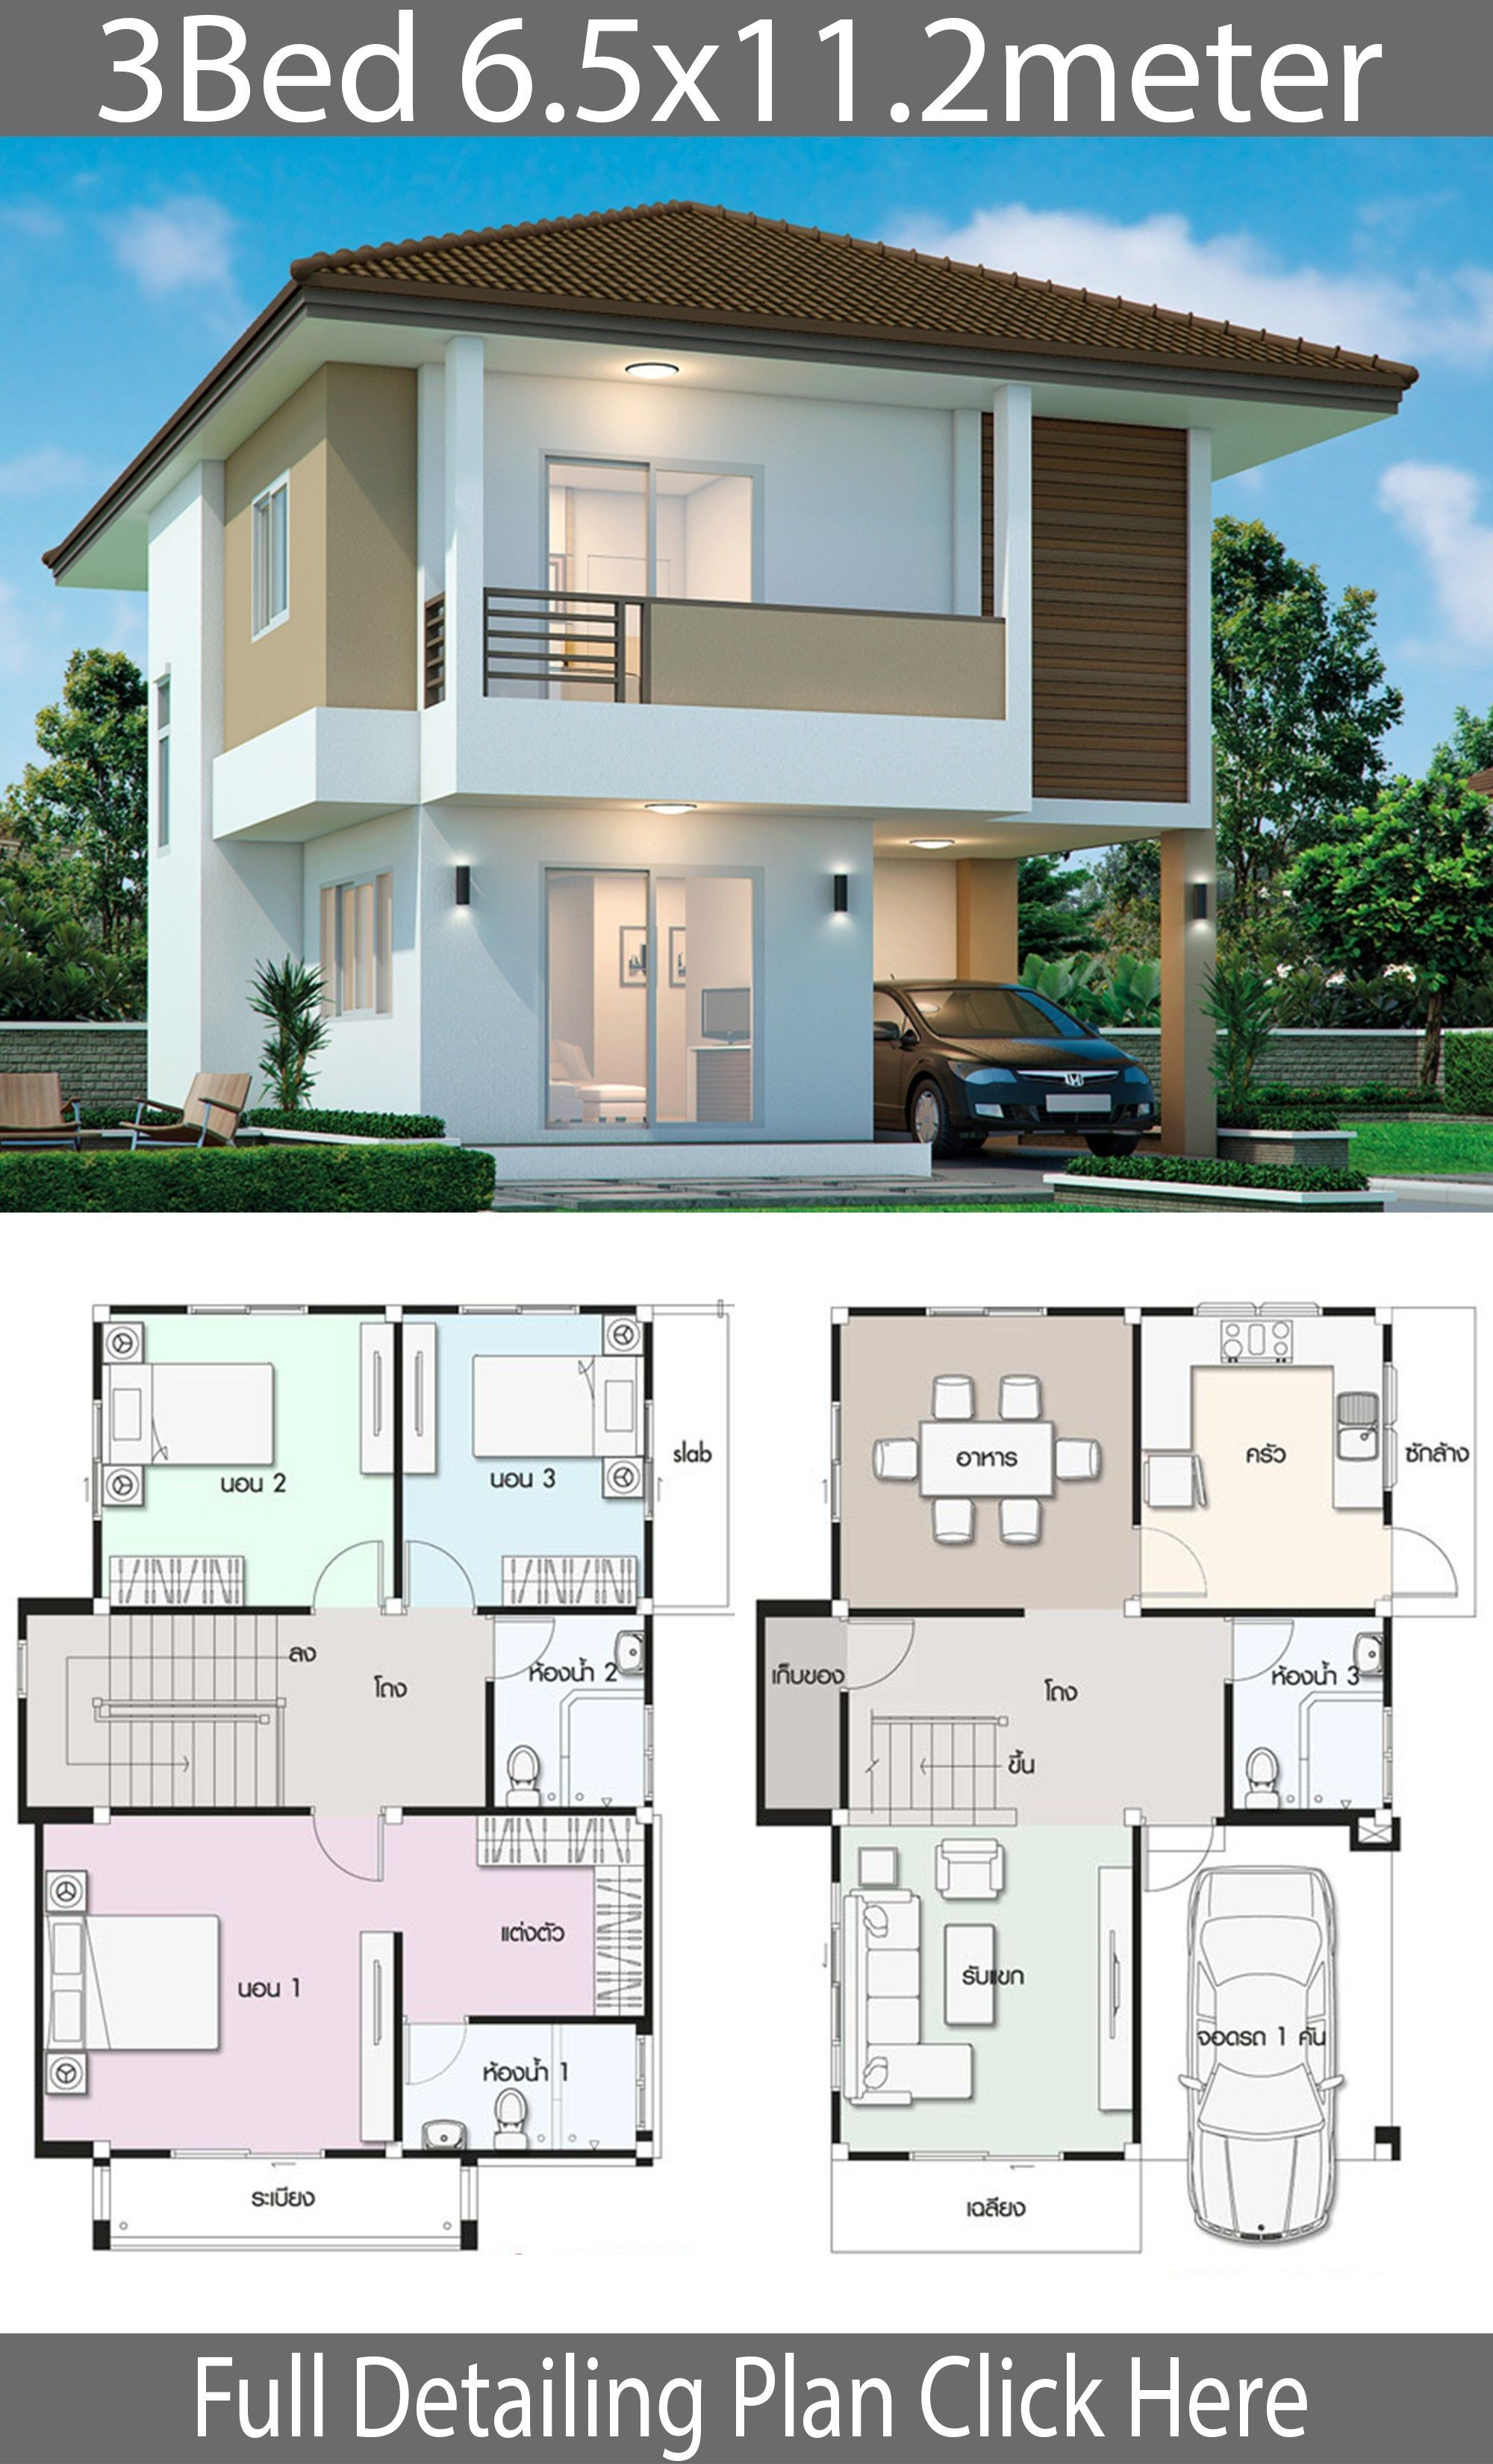 House design plan 6.5x11.2m with 3 bedrooms #hausdesign